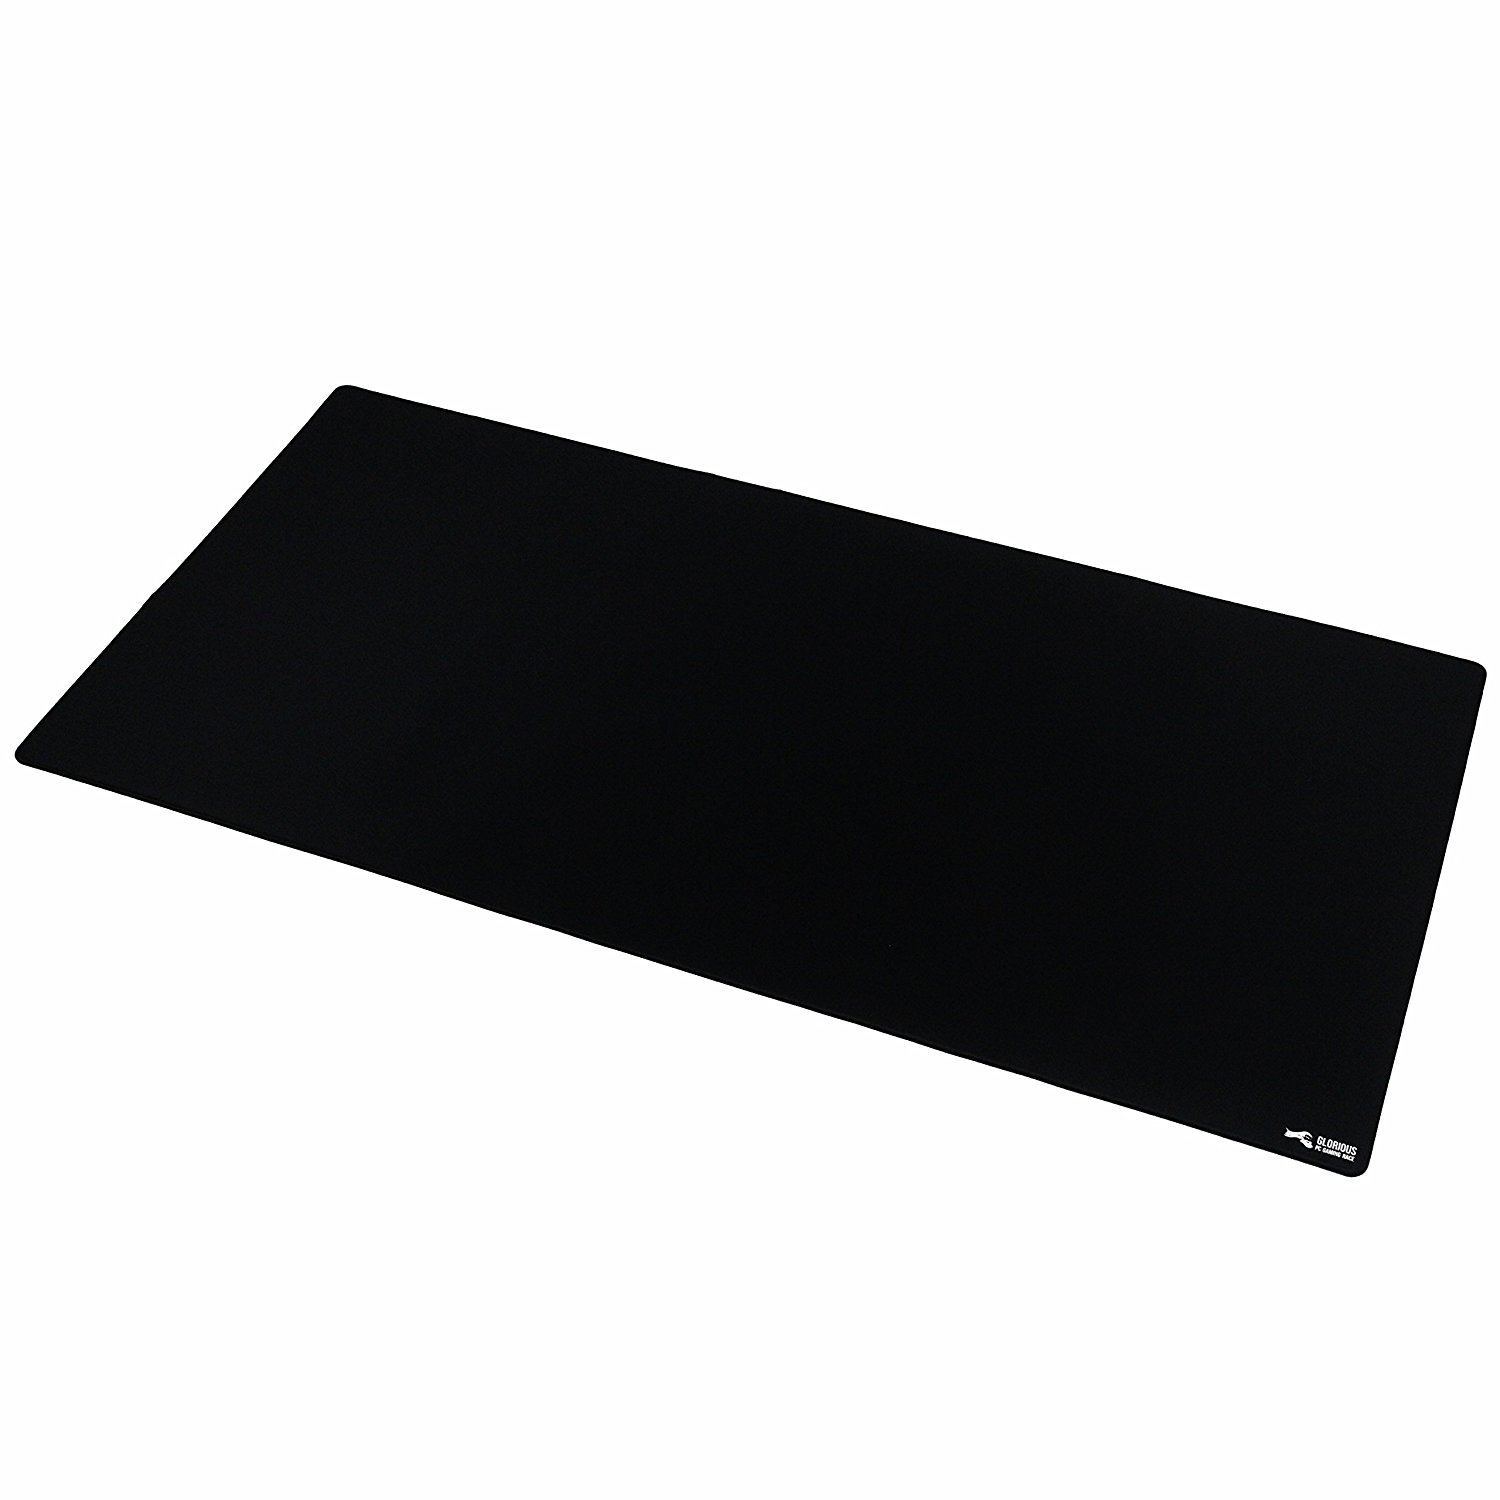 Glorious PC Gaming Race XXXL Mouse Pad is great for your